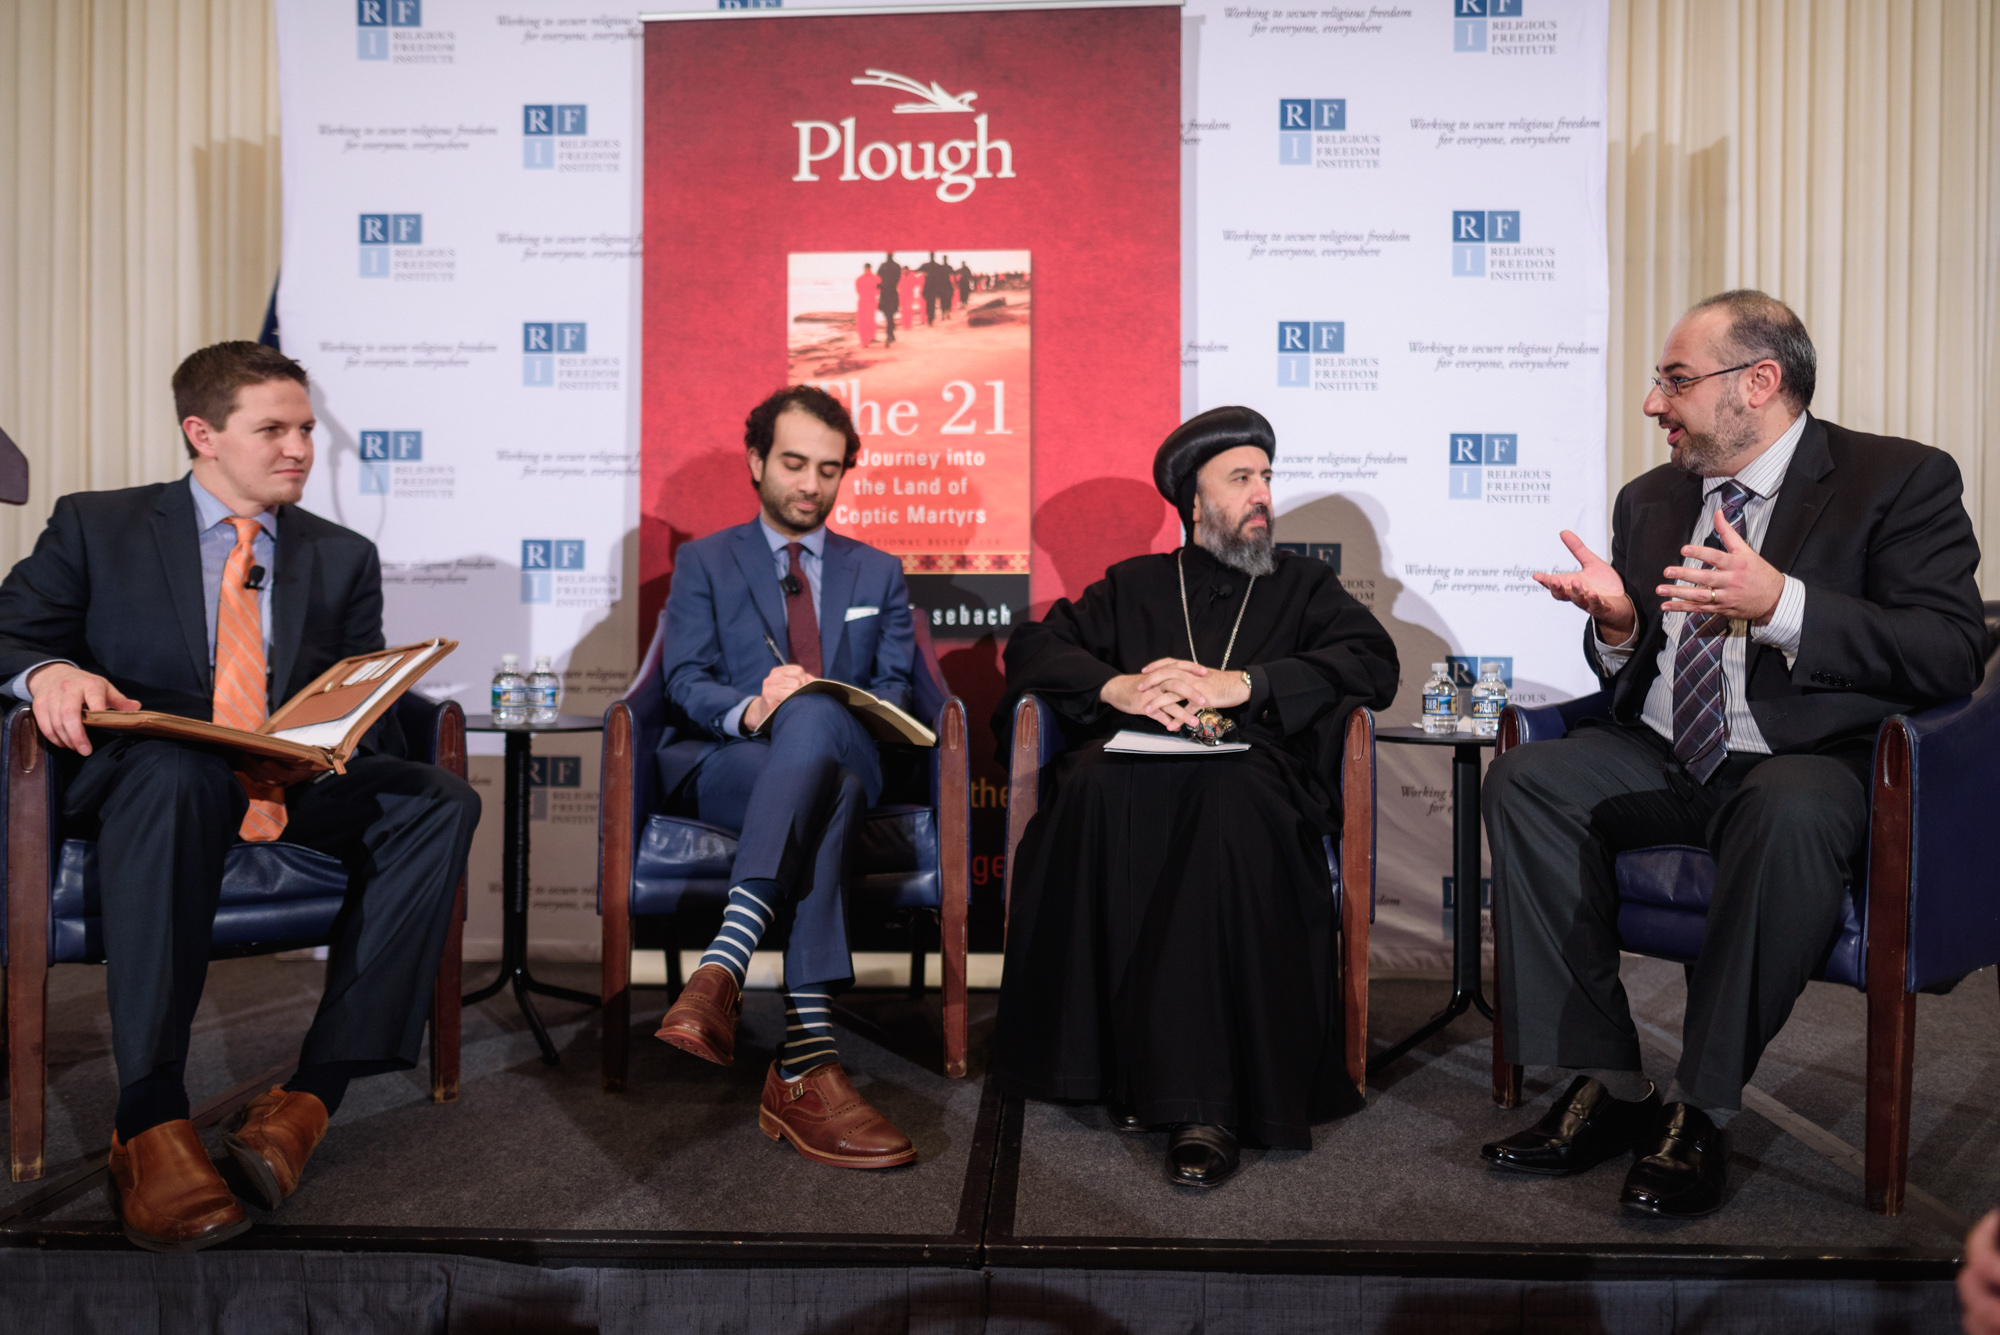 115 - February 12th 2019 Religious Freedom Institute at National Press Club - Photo Nathan Mitchell.jpg